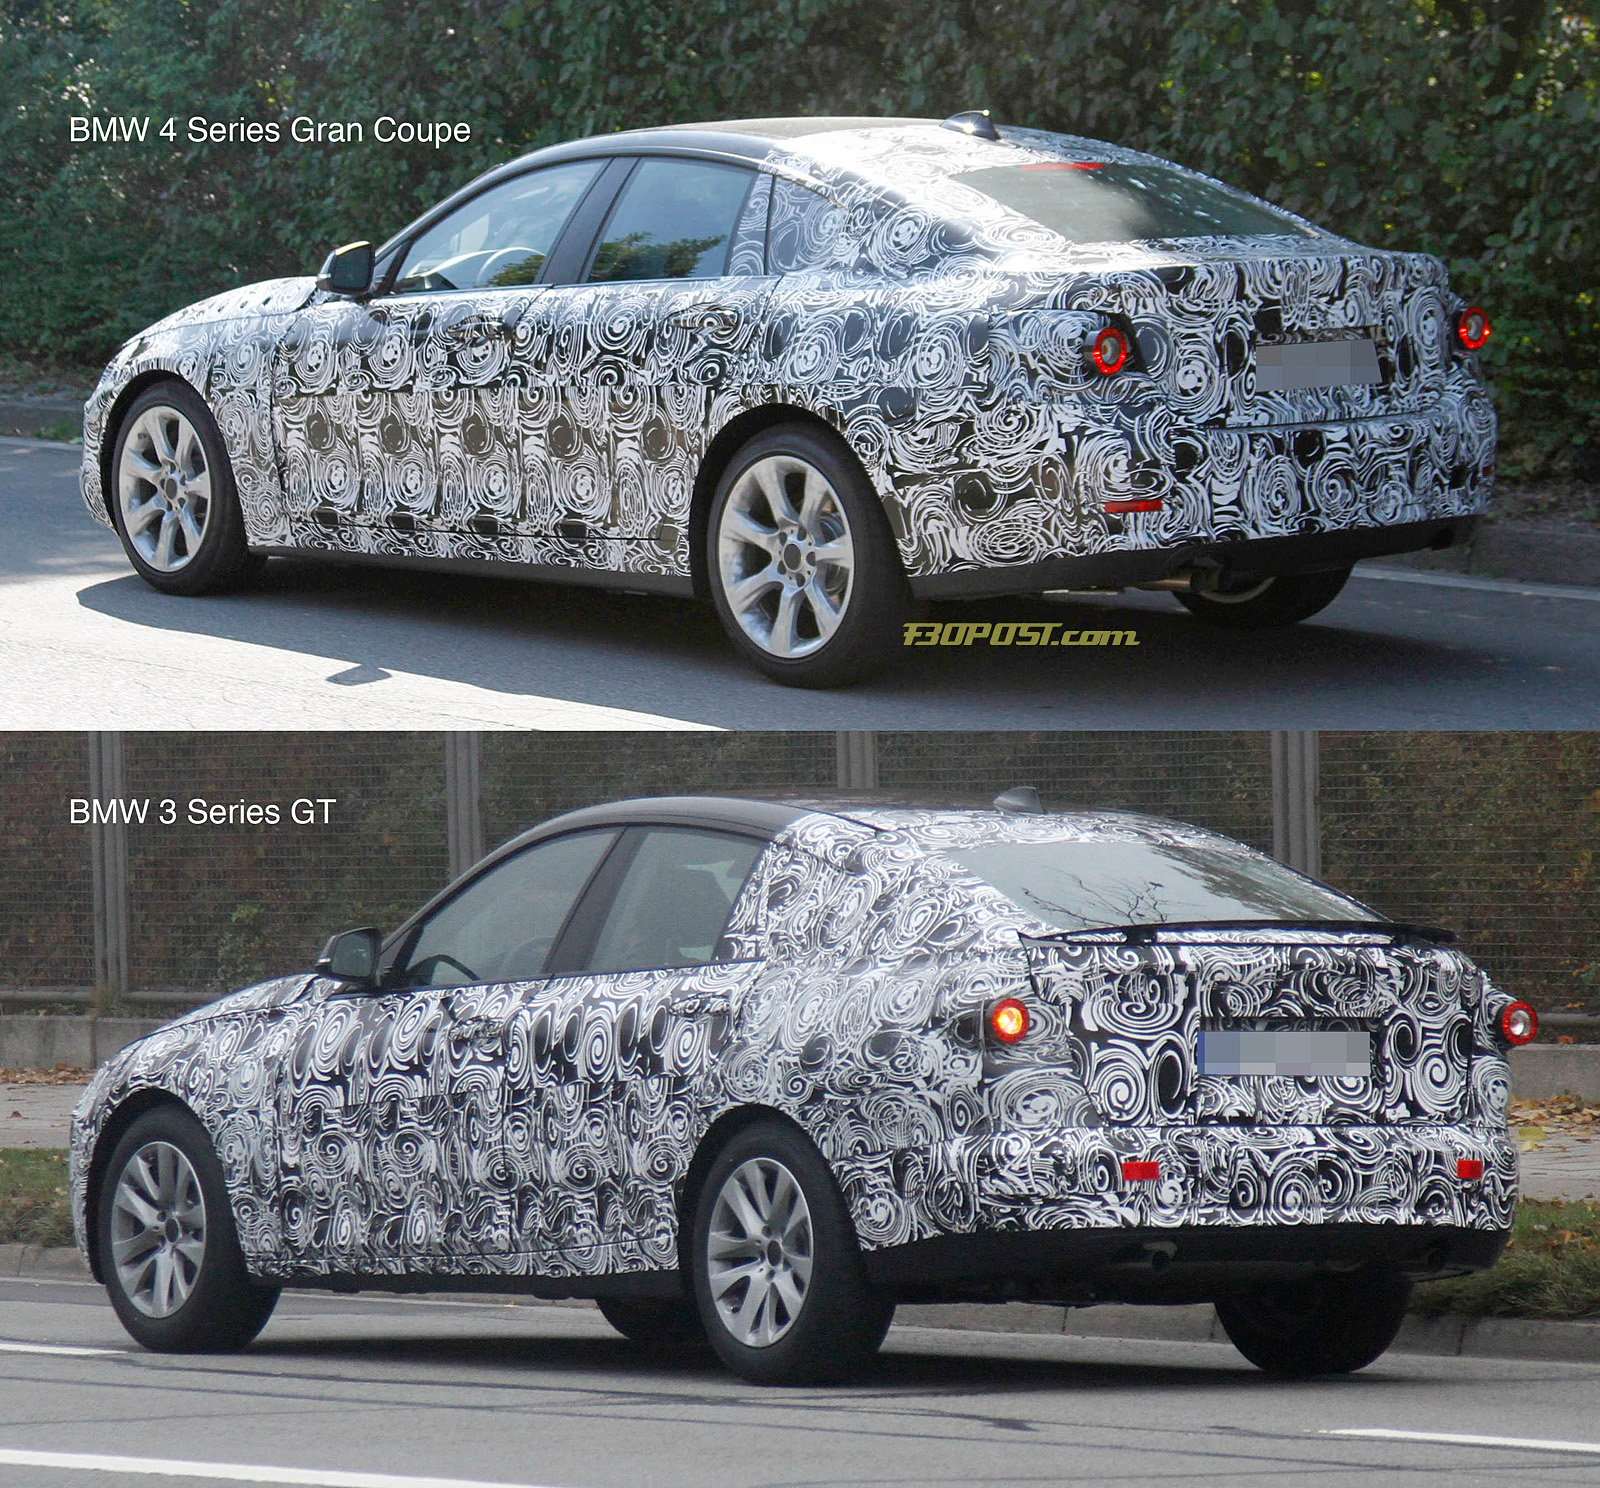 new spy pics convince us mystery mule is bmw 4 series gran coupe. Black Bedroom Furniture Sets. Home Design Ideas